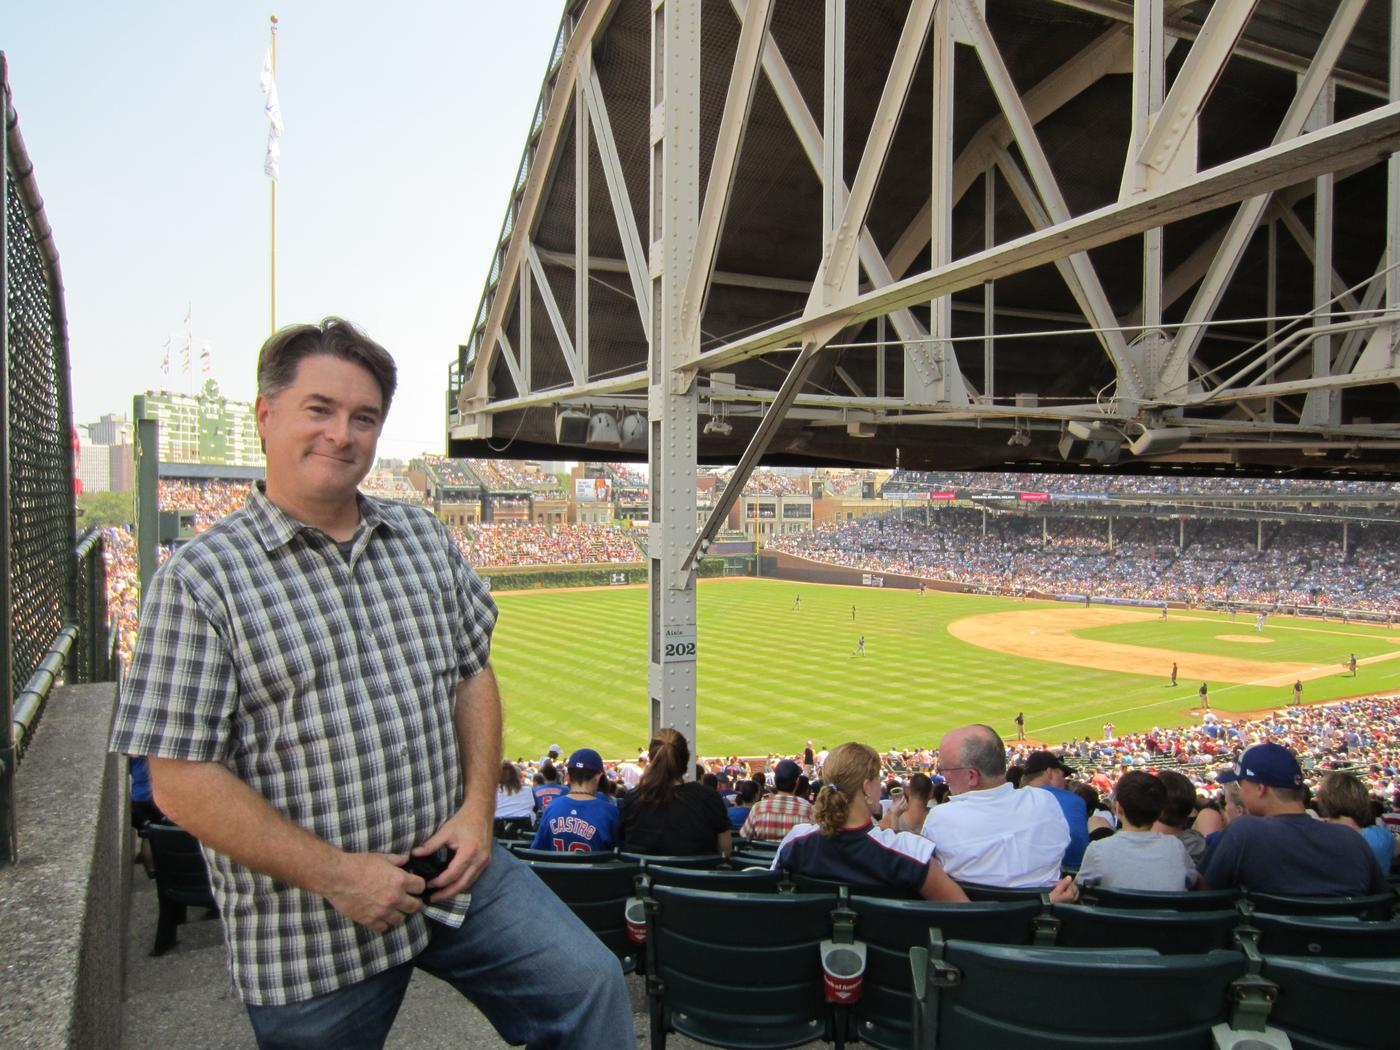 Former Los Angeles Dodgers scout Danny Evans, shown at Chicago's Wrigley Field where he spent so many days as a youngster, and former Jays scouting director Jon Lalonde are covering the Texas Rangers to prepare if the two teams meet. Photo: Andie Evans Studios.